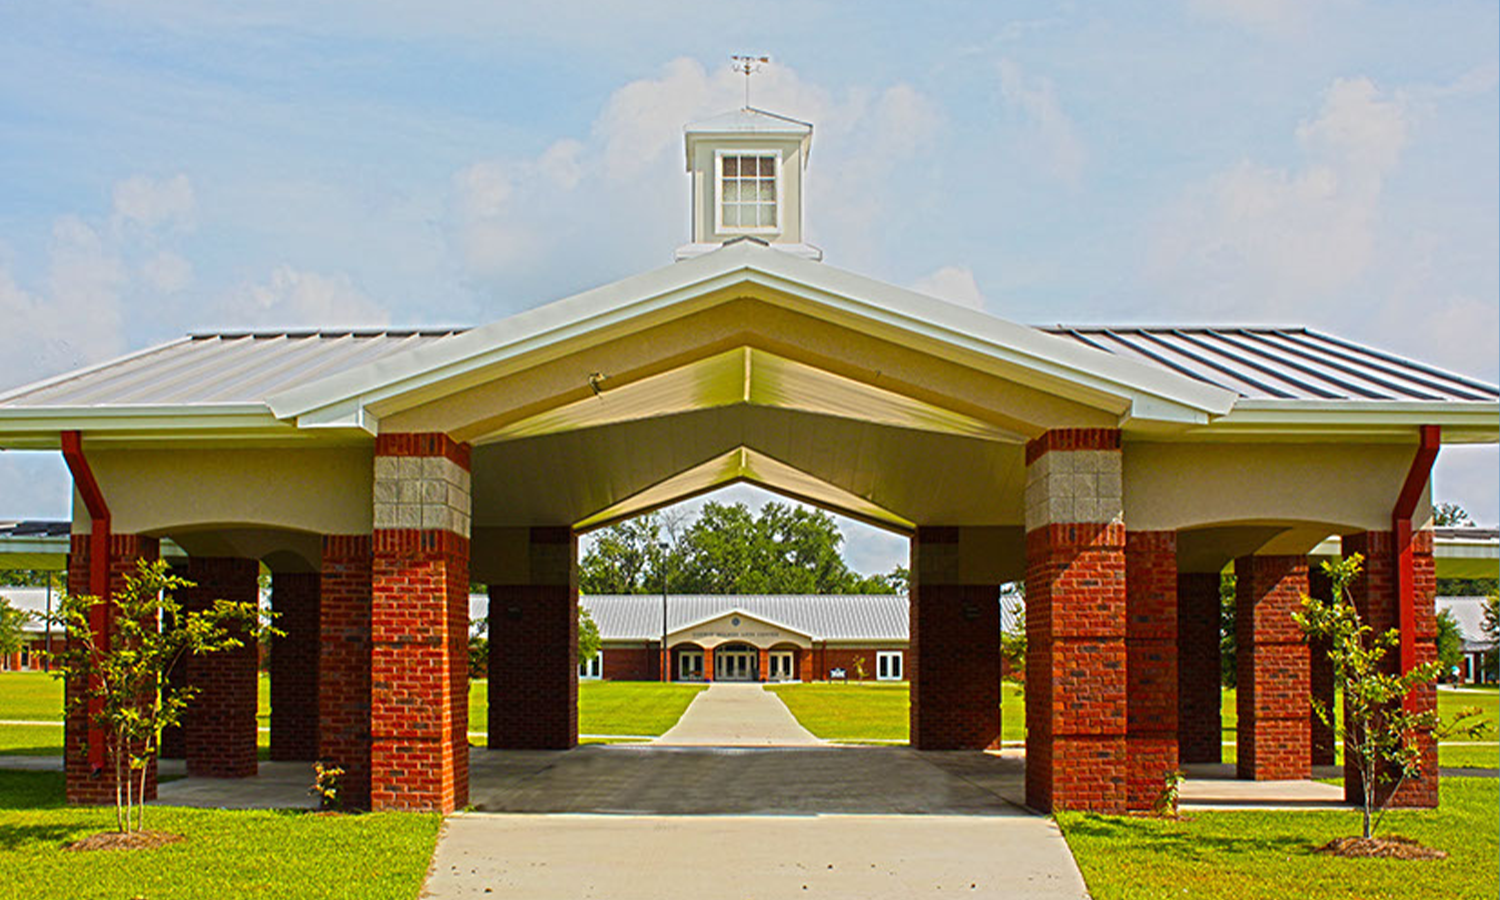 Gazebo and Fine Arts Building